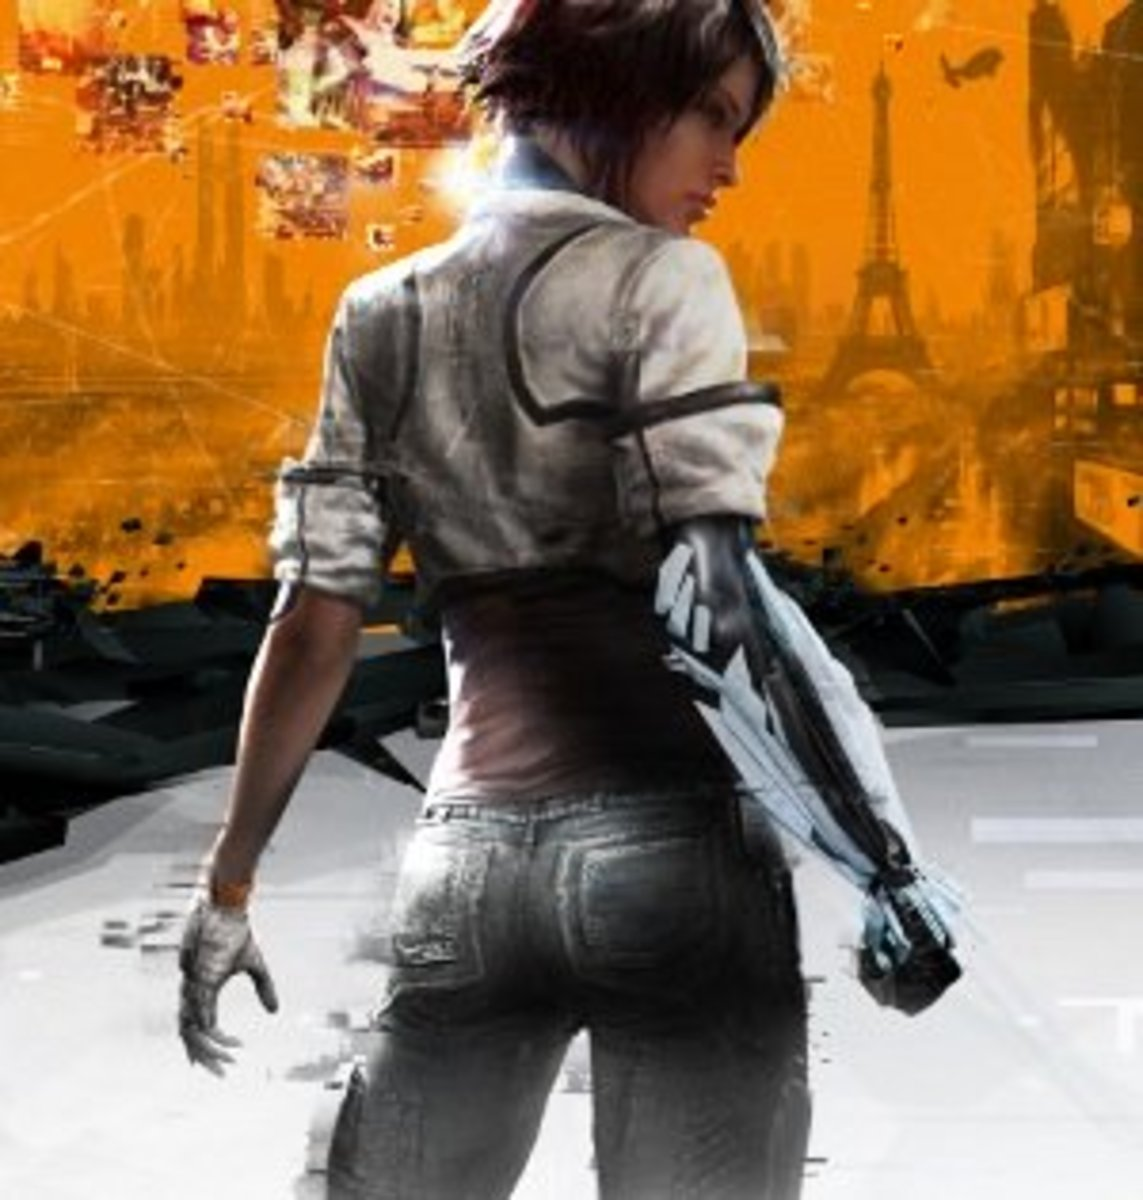 Remember Me's lackluster sales are often pointed to as evidence that female protagonists are bad for business. Portal seemed to do just fine.